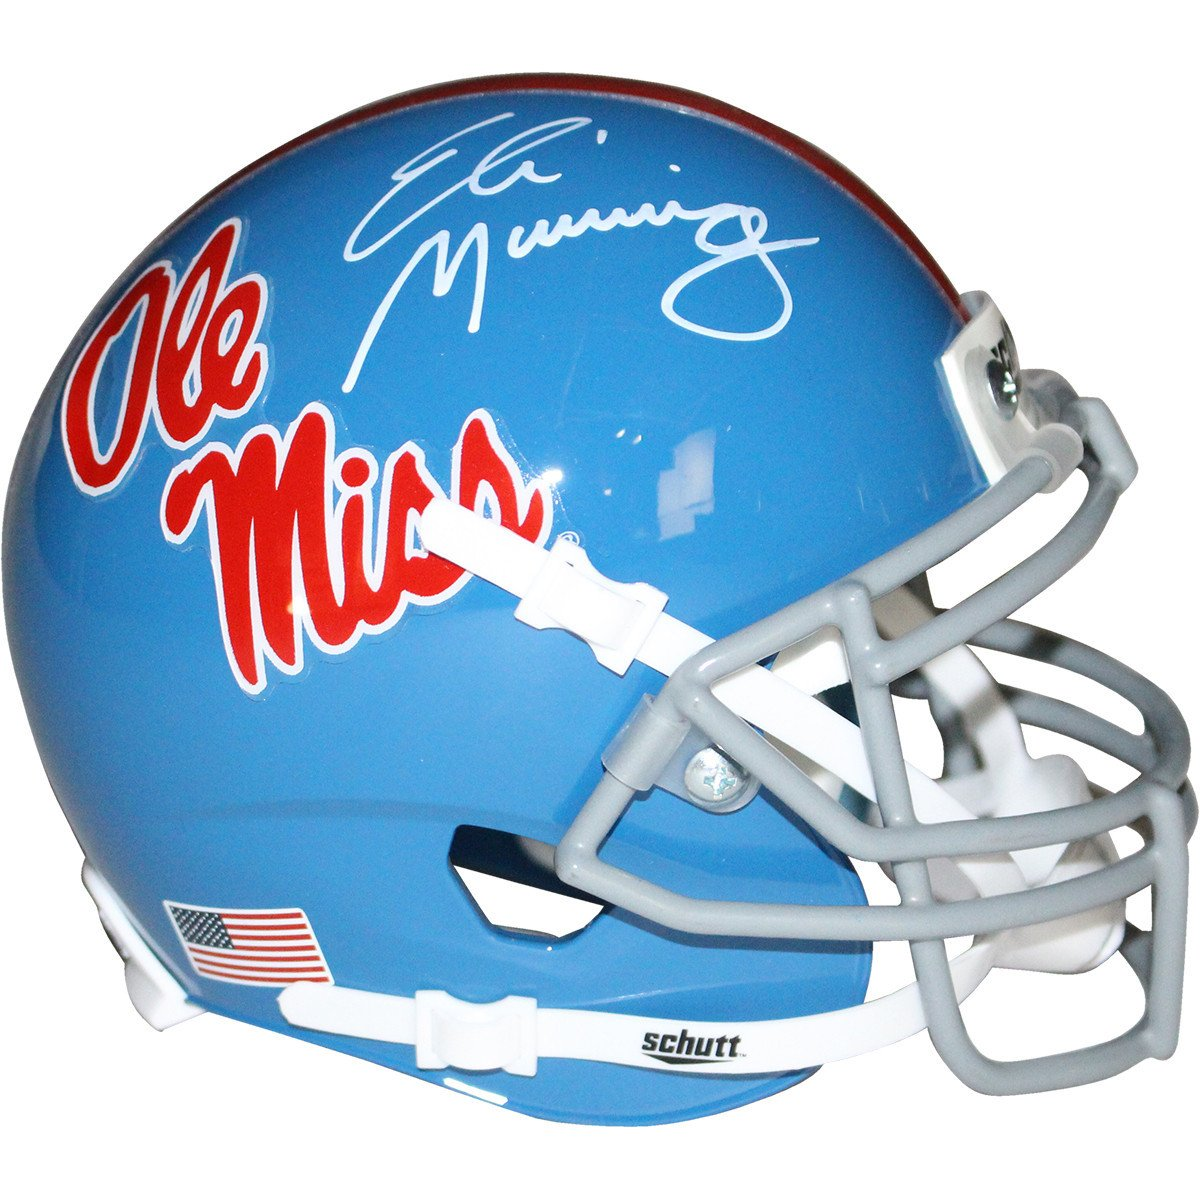 online store f8aca 218c5 Details about Eli Manning Signed Ole Miss Powder Blue Replica Mini helmet